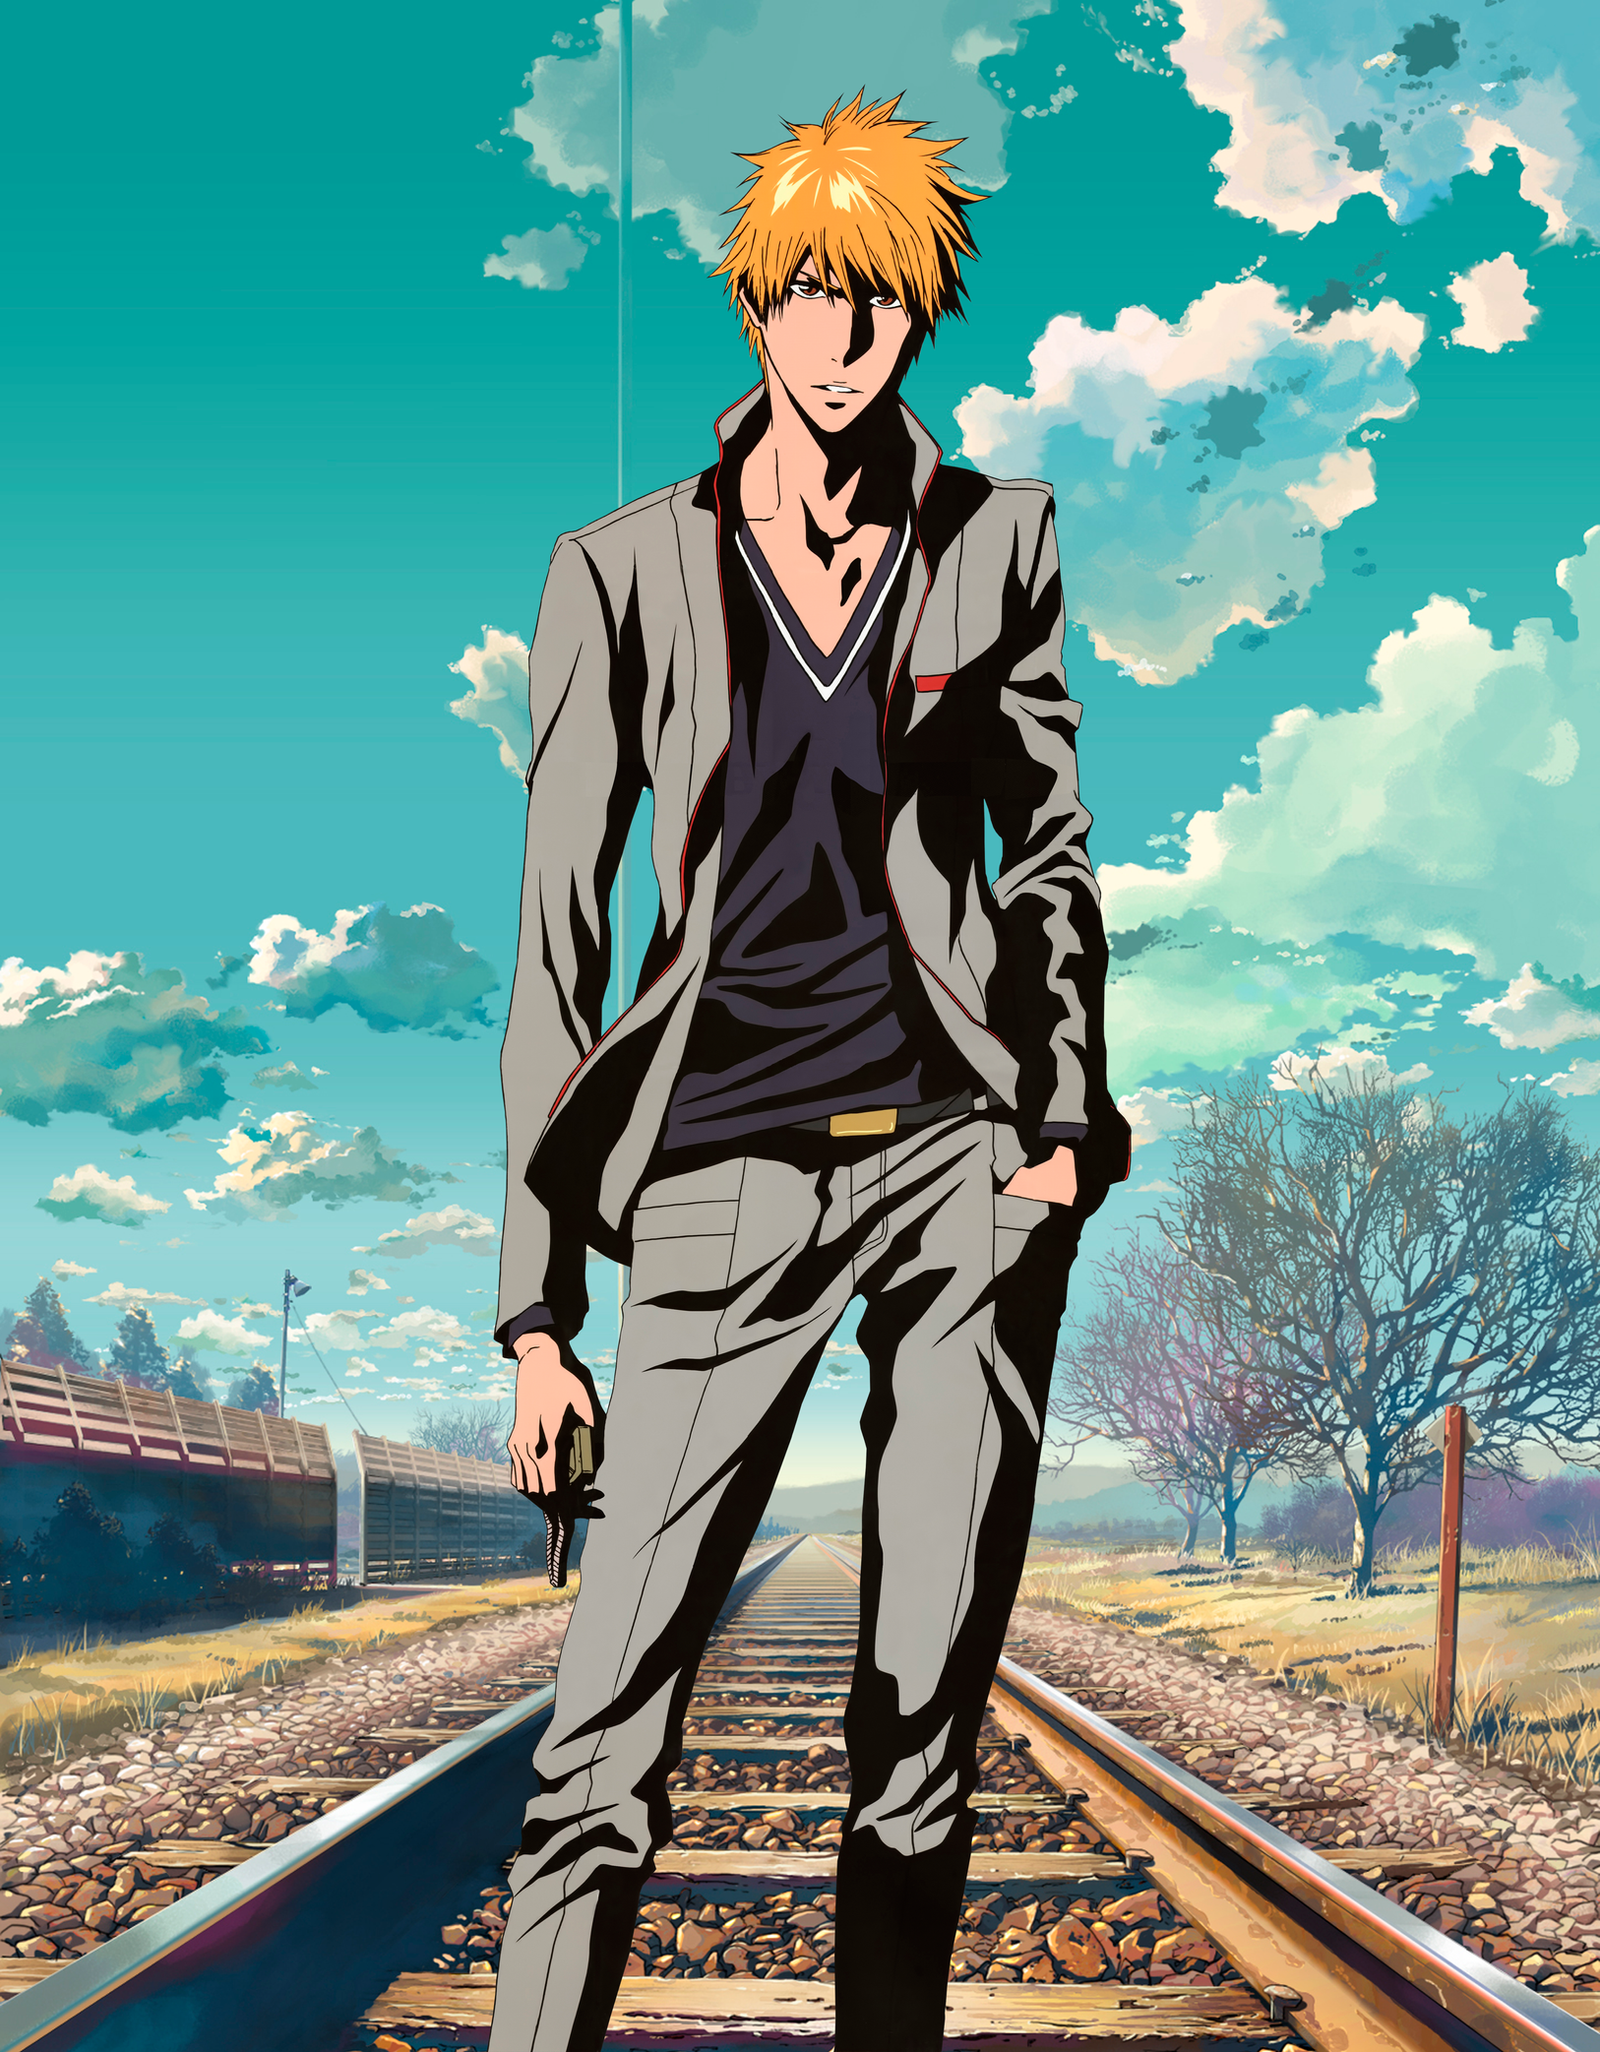 Ichigo Kurosaki 2 years after by Narusailor